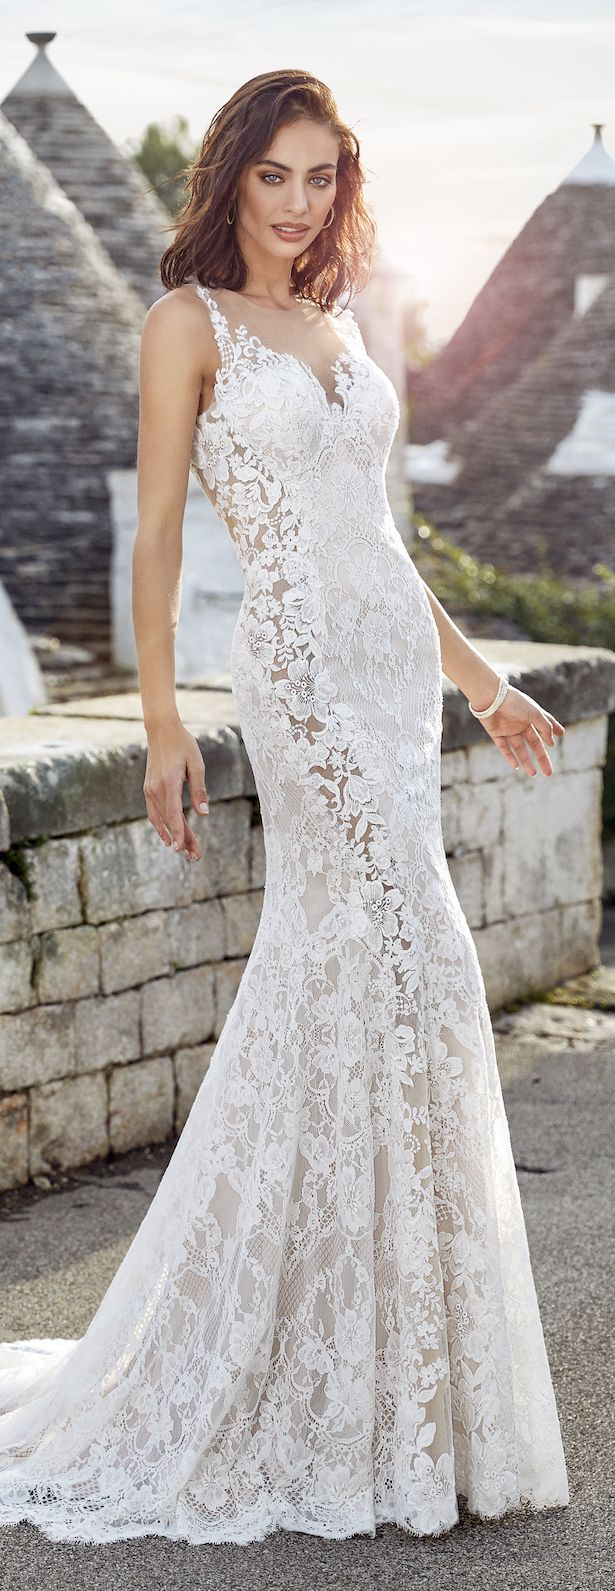 Dorable Carenna Gown Image Collection - Ball Gown Wedding Dresses ...